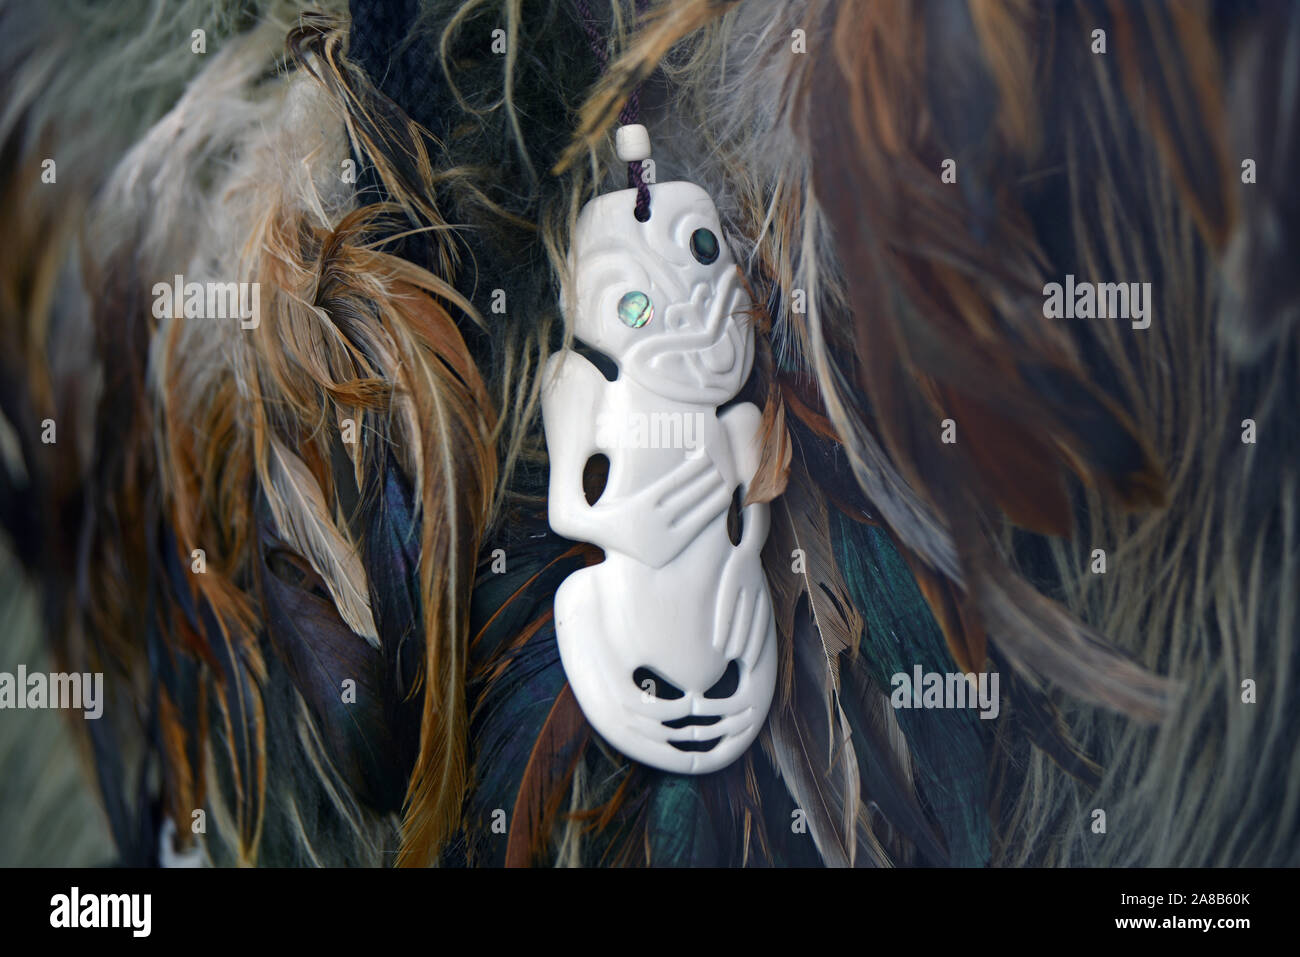 A Traditional Maori Bone Carving Nestled In A Feather Cloak New Zealand Stock Photo Alamy